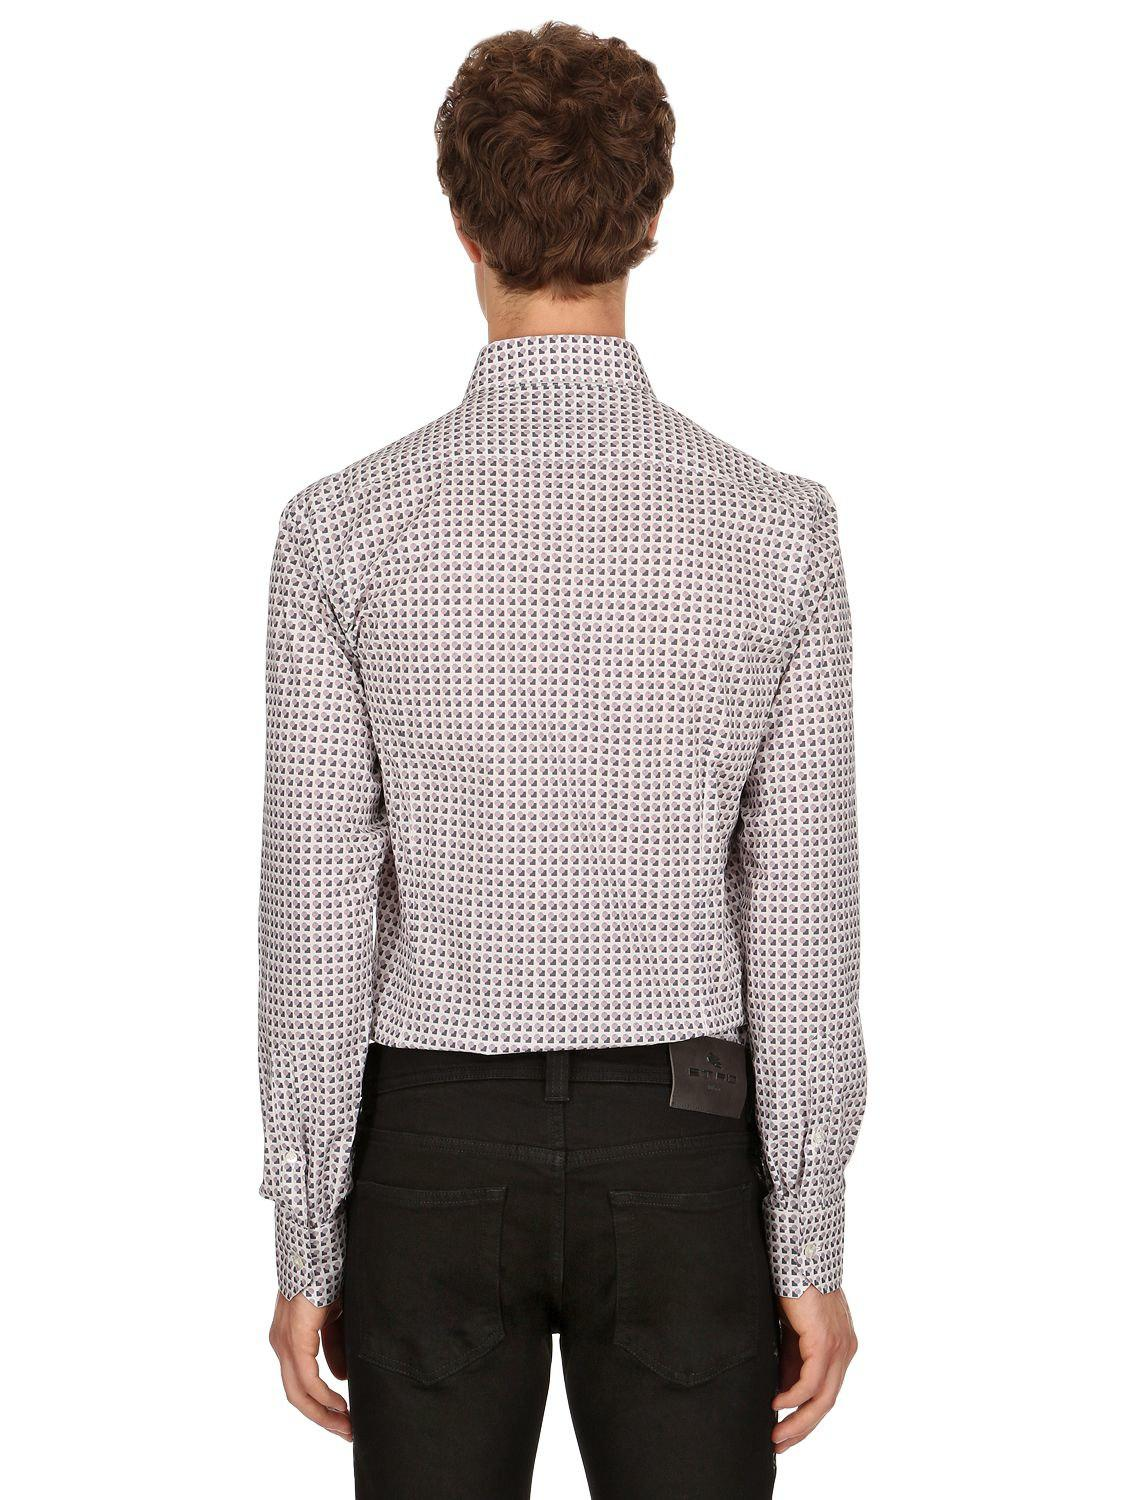 SLIM FIT 70'S PRINT STRETCH COTTON SHIRT Buy Cheap Latest Collections High Quality For Sale hR7ZyNou